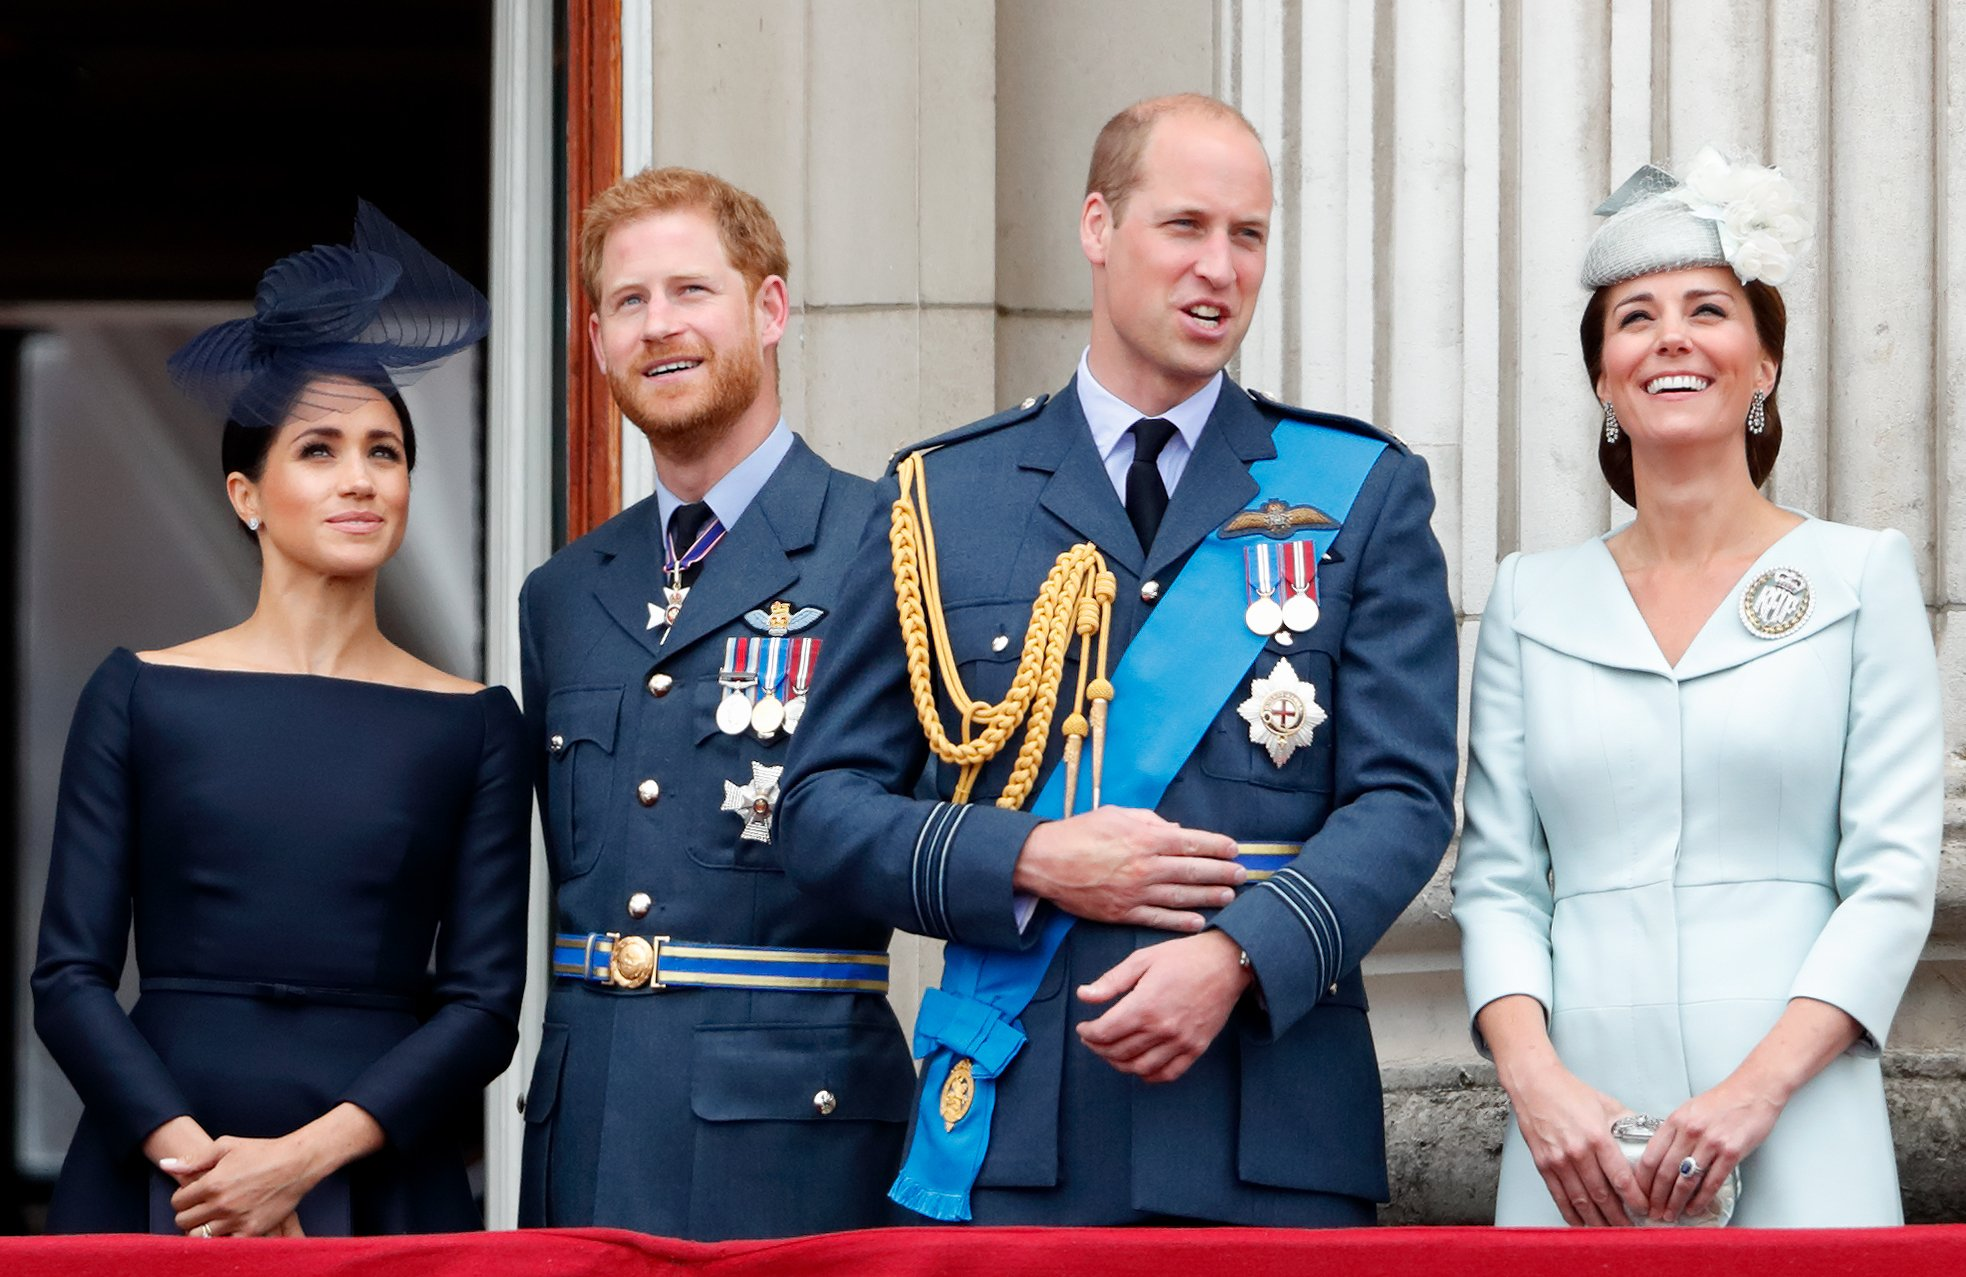 Image Credits: Getty Images / Max Mumby / Indigo   Meghan, Duchess of Sussex, Prince Harry, Duke of Sussex, Prince William, Duke of Cambridge and Catherine, Duchess of Cambridge watch a flypast to mark the centenary of the Royal Air Force from the balcony of Buckingham Palace on July 10, 2018 in London, England. The 100th birthday of the RAF, which was founded on on 1 April 1918, was marked with a centenary parade with the presentation of a new Queen's Colour and flypast of 100 aircraft over Buckingham Palace.